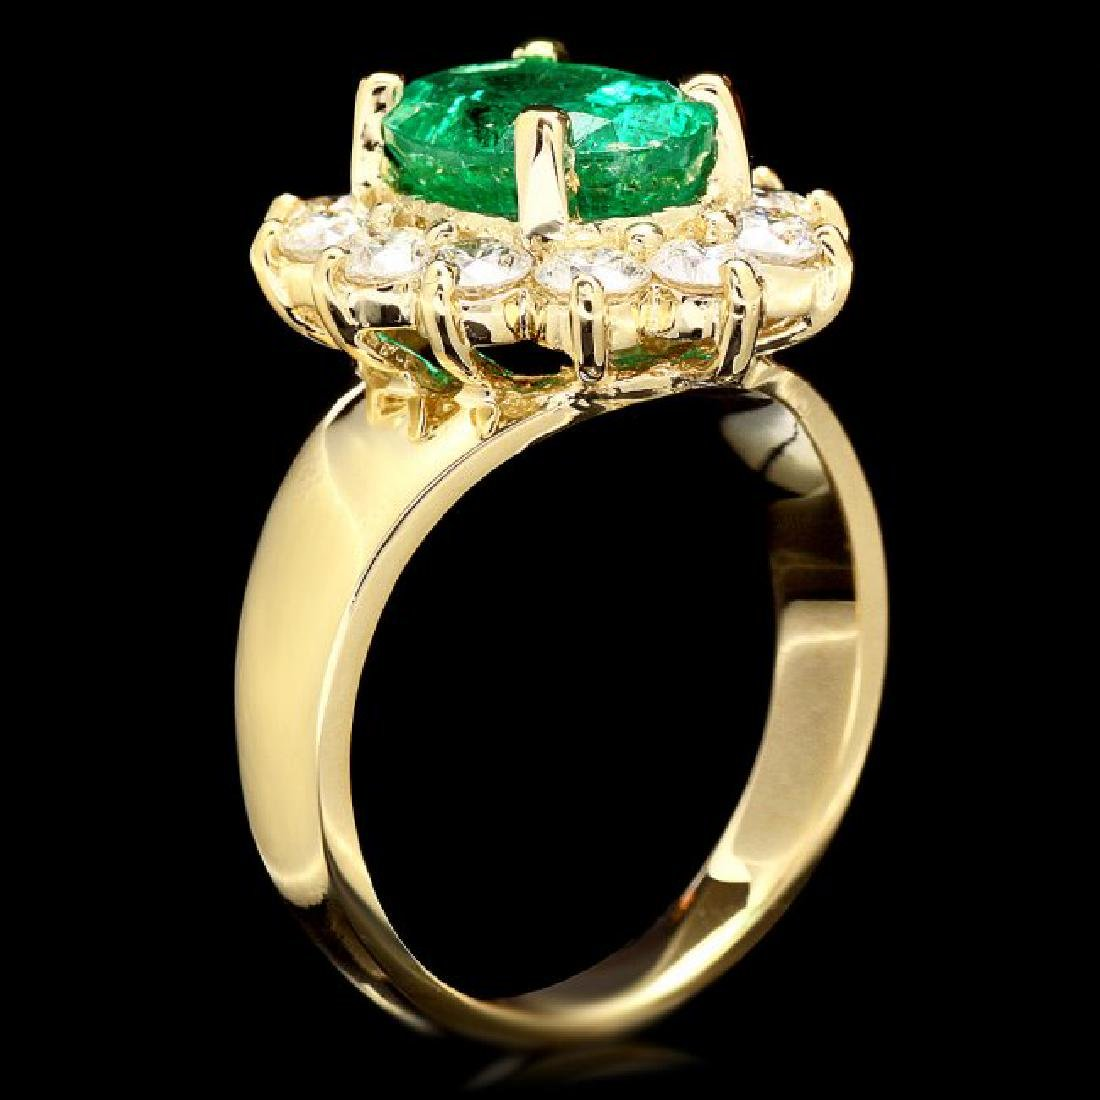 14k Gold 2.70ct Emerald 1.30ct Diamond Ring - 3